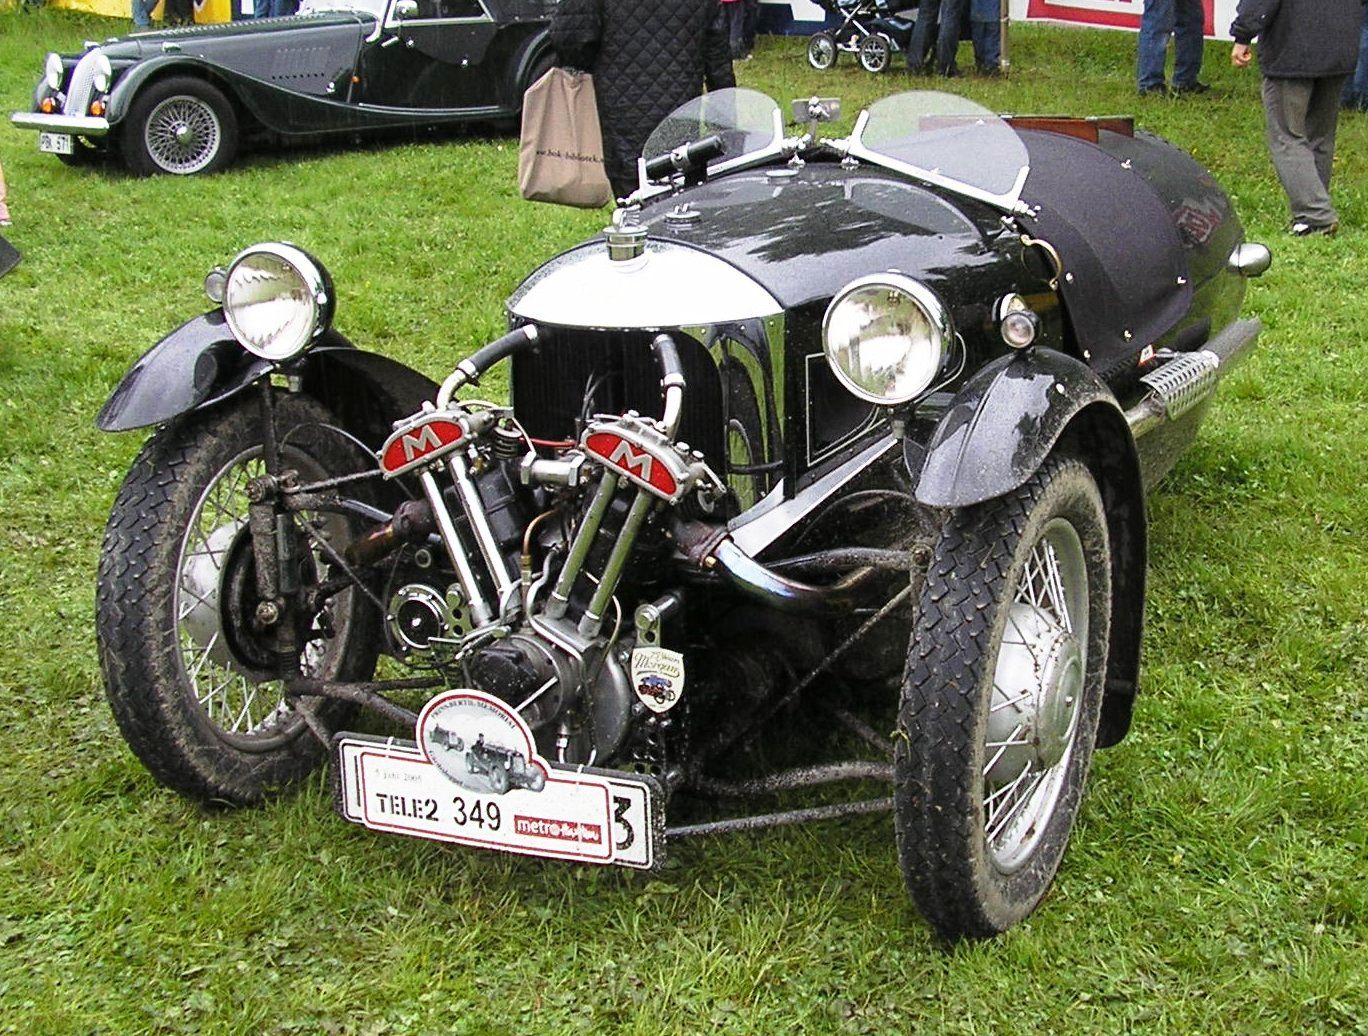 Morgan 3 Wheeler Ed With A Matchless Mx4 Engine Between 1911 1939 The Motor Company Used Variety Of Propietary V Twin Engines In Their